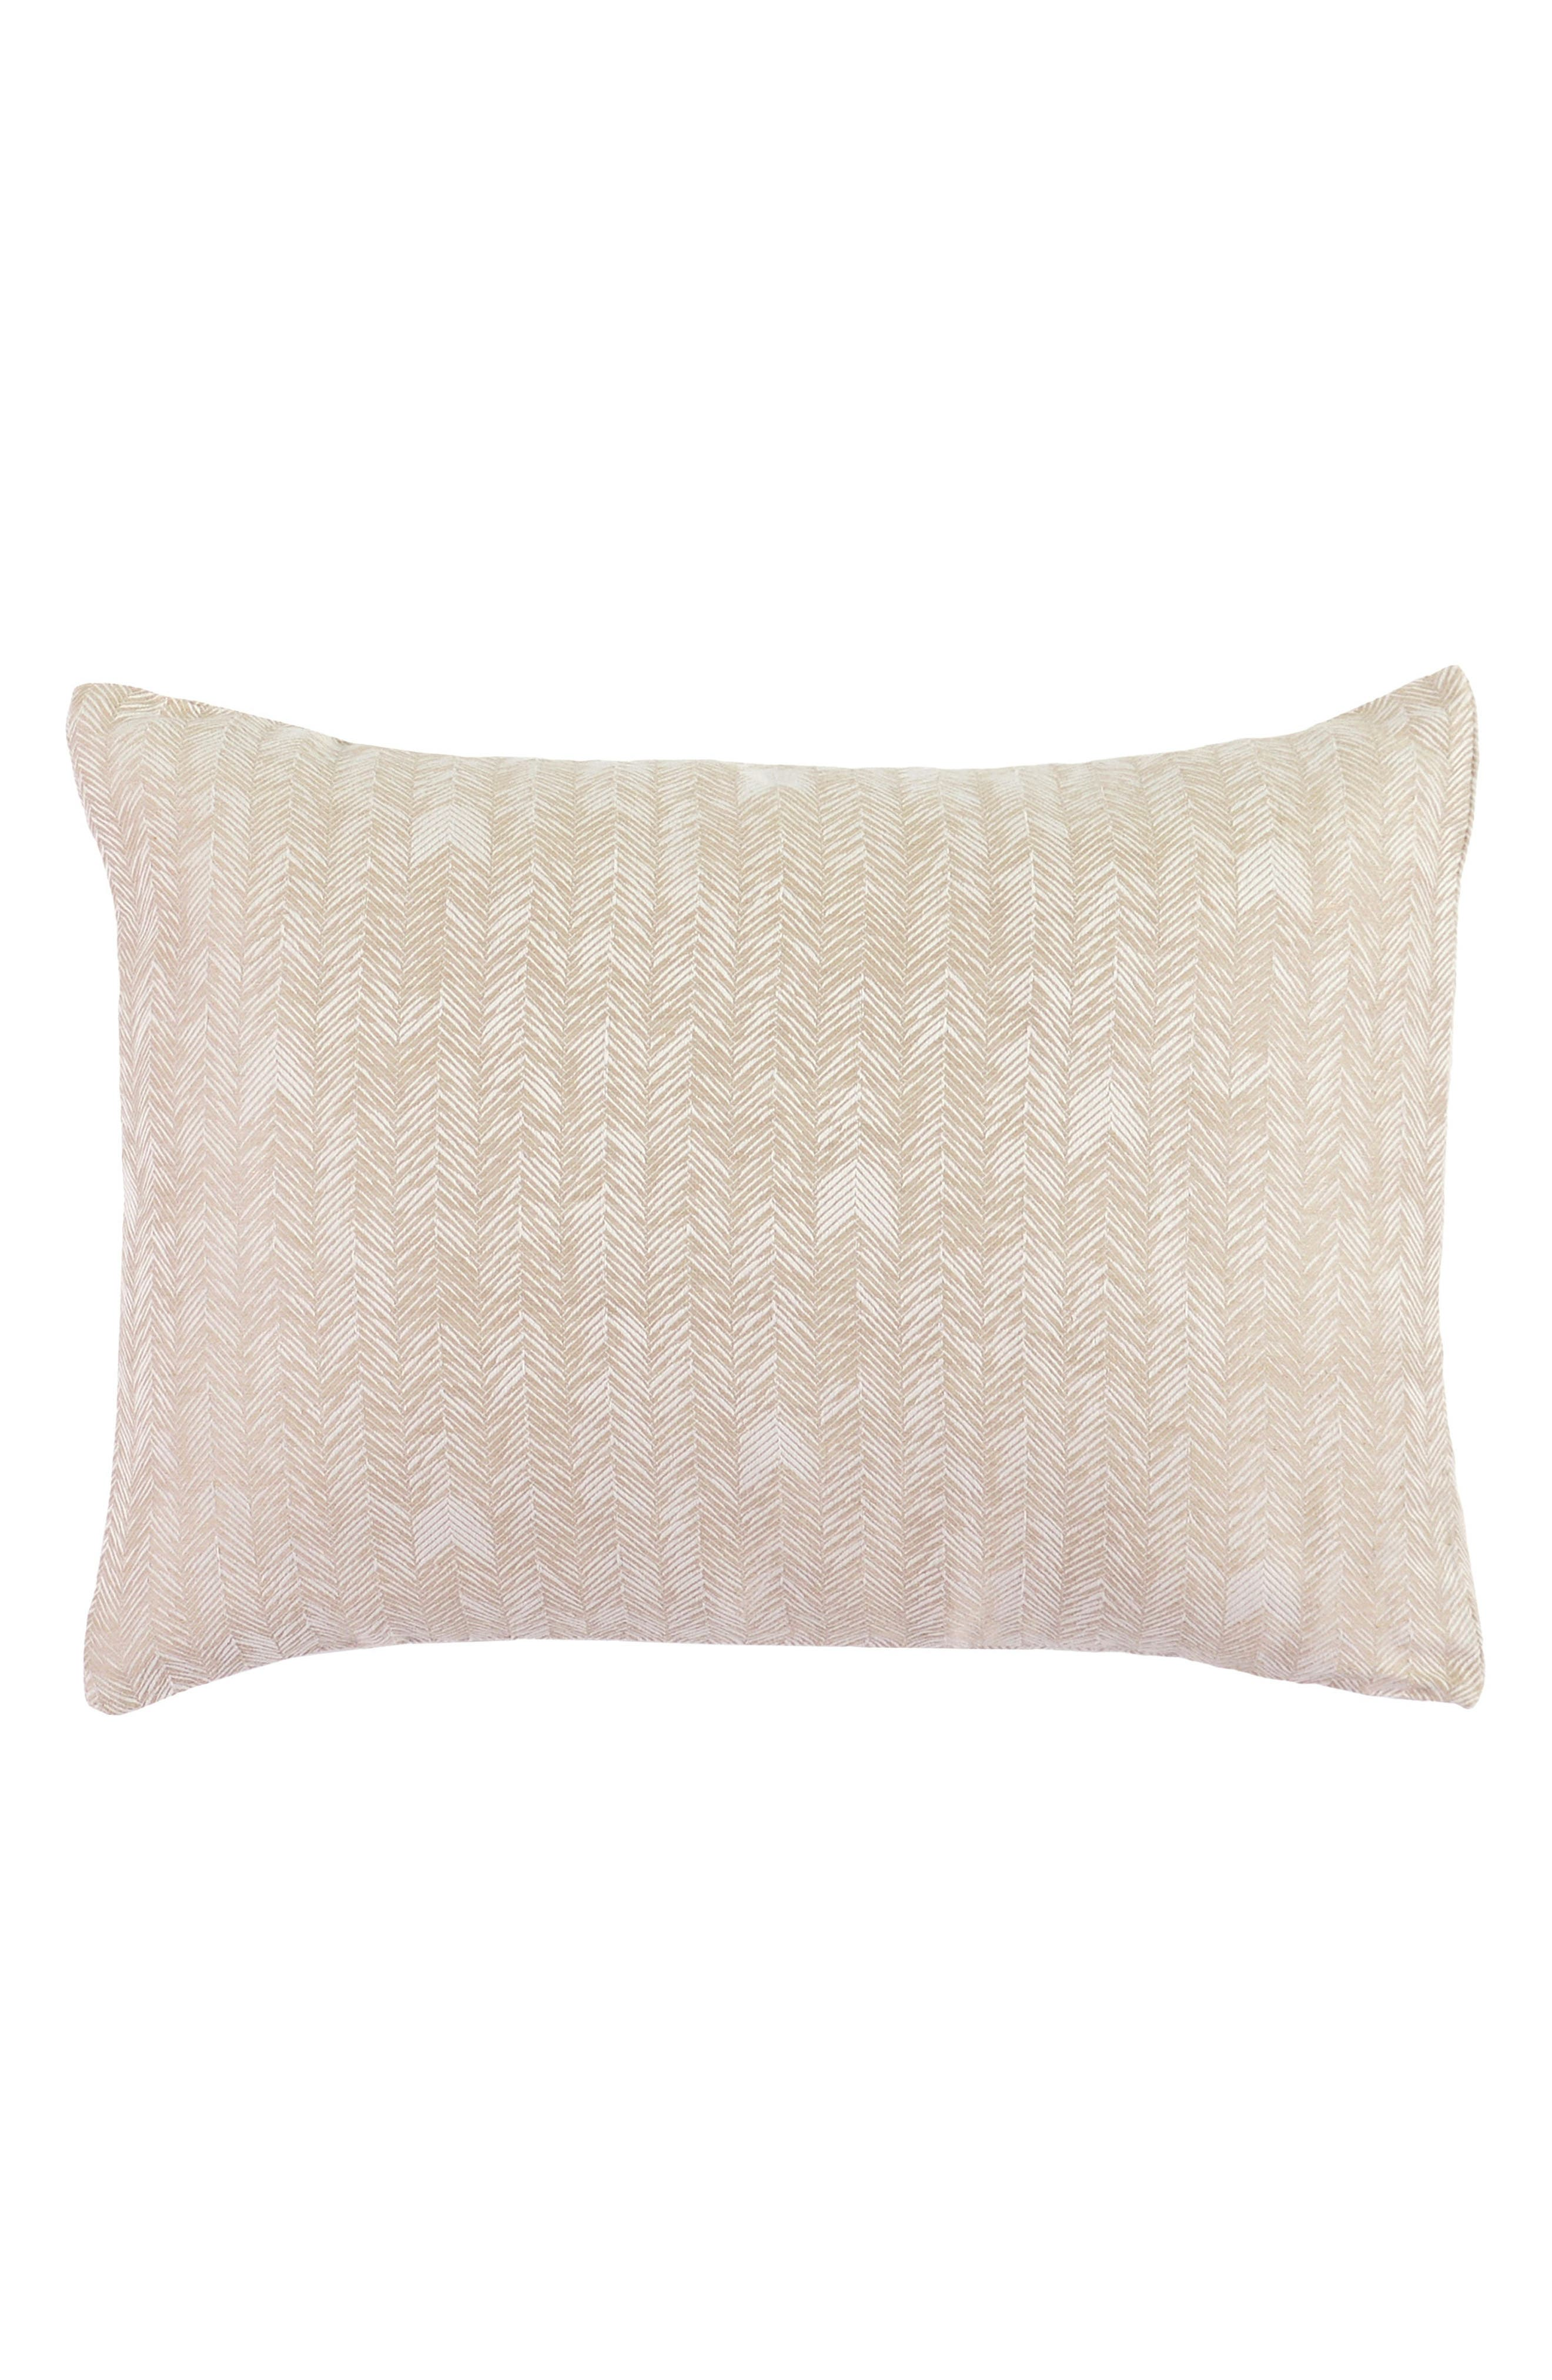 Alternate Image 1 Selected - Villa Home Collection Sham